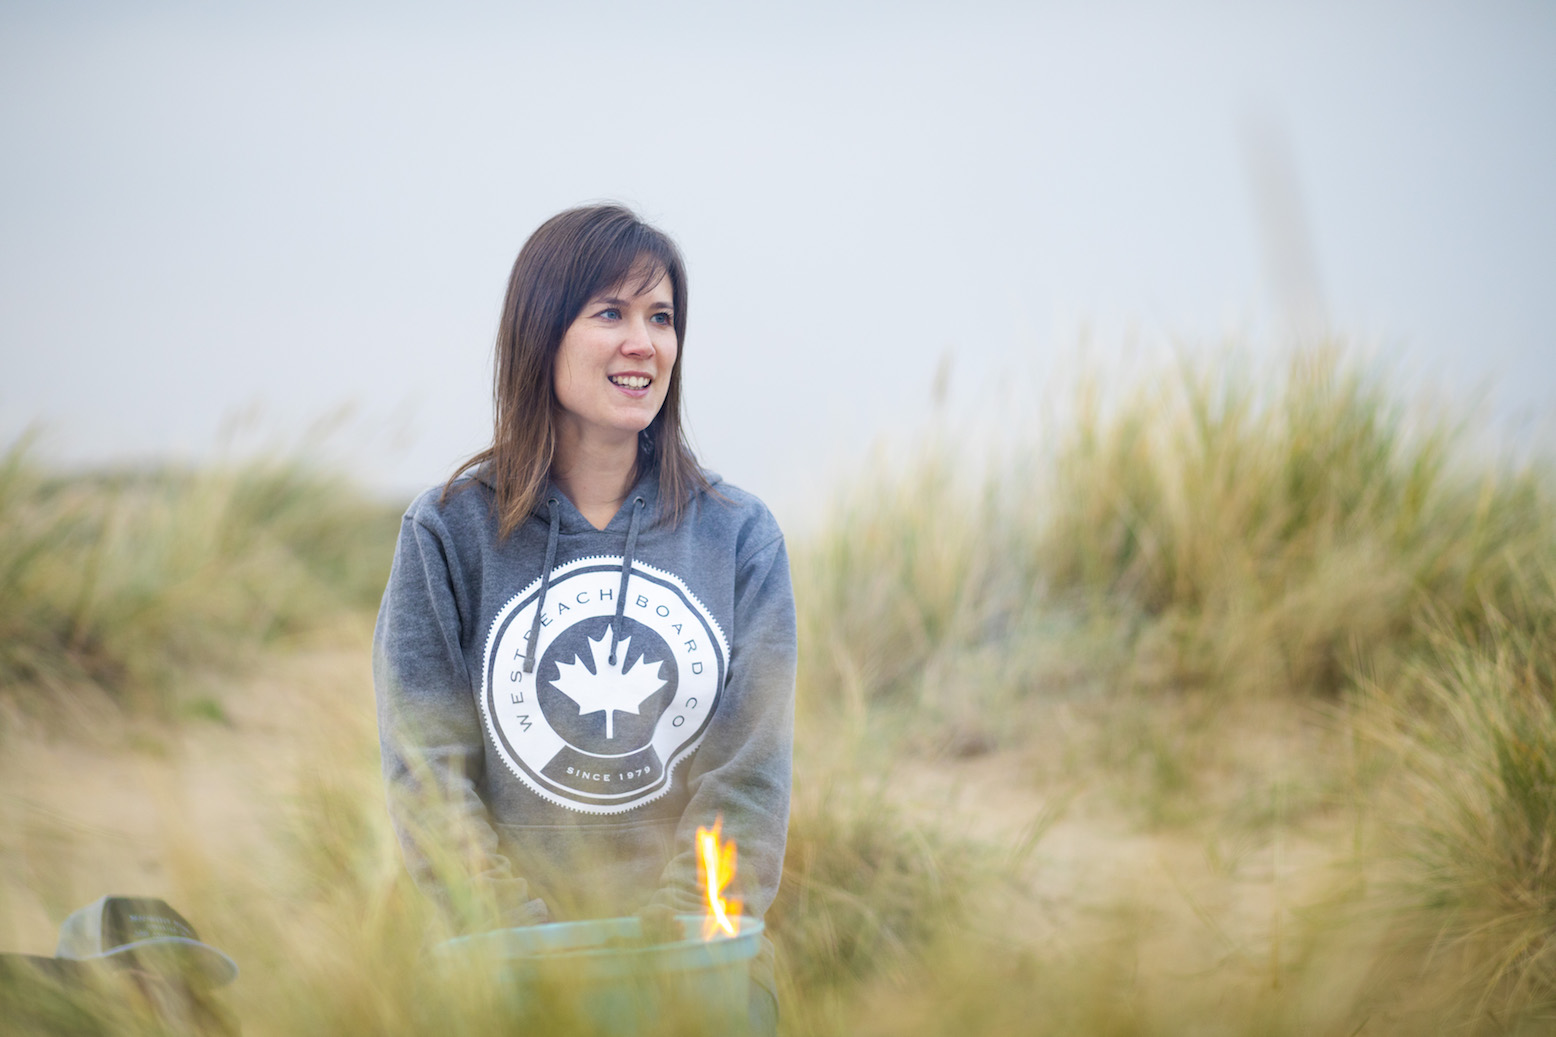 An image of myself sat in the sand dunes at Camber Sands wearing a grey hoodie from West Beach